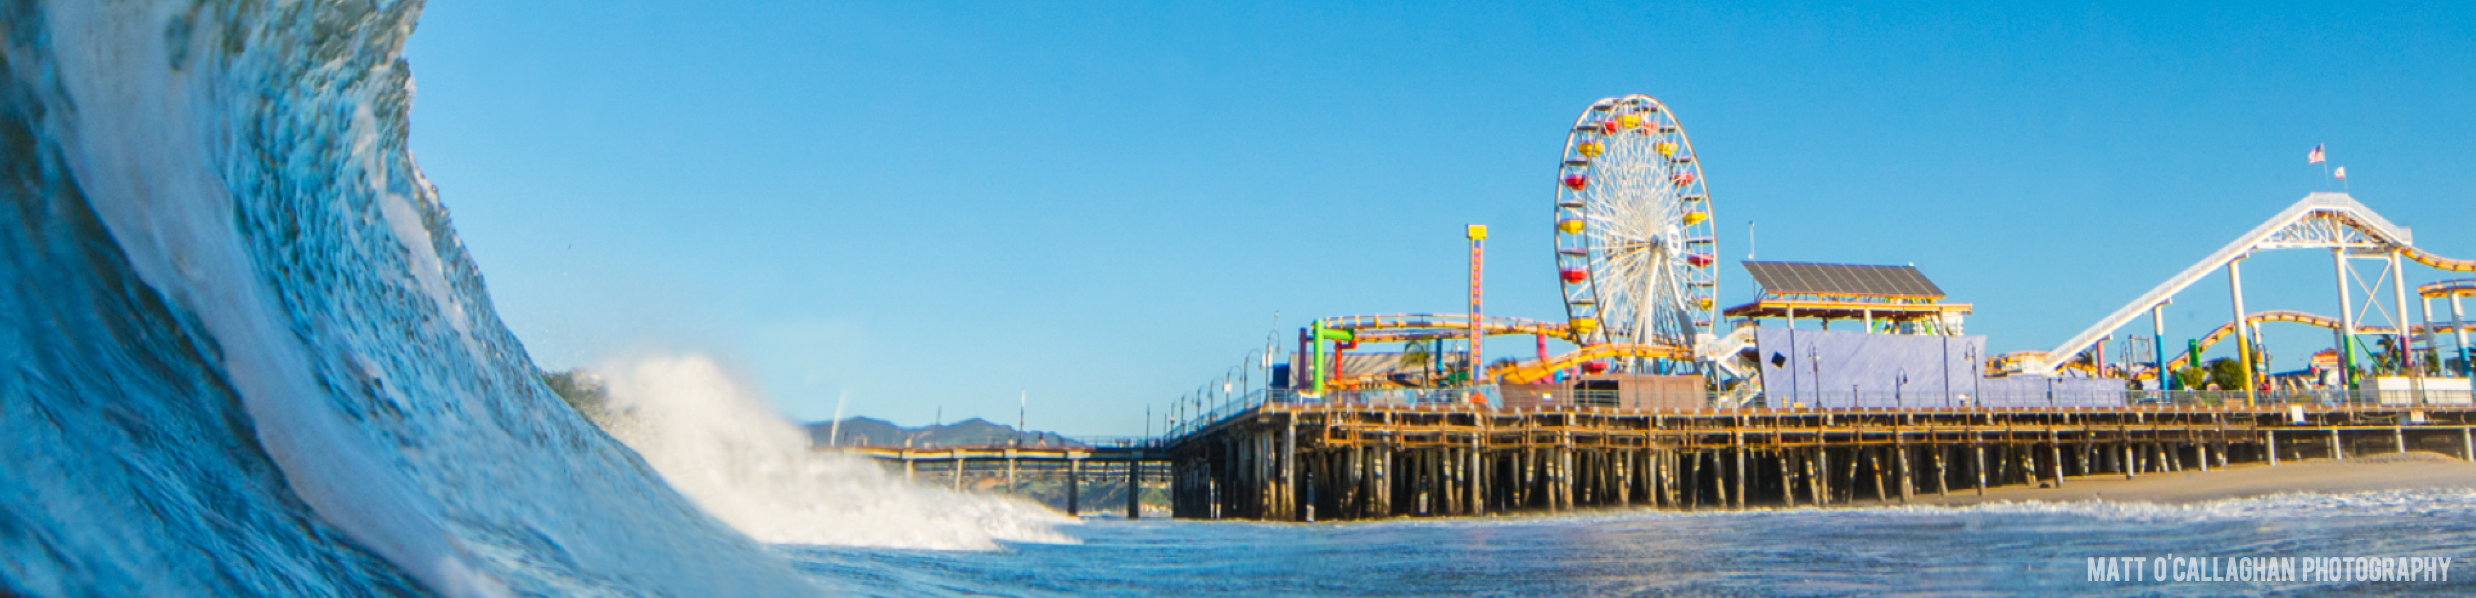 wave_pier_w_creds_adjusted